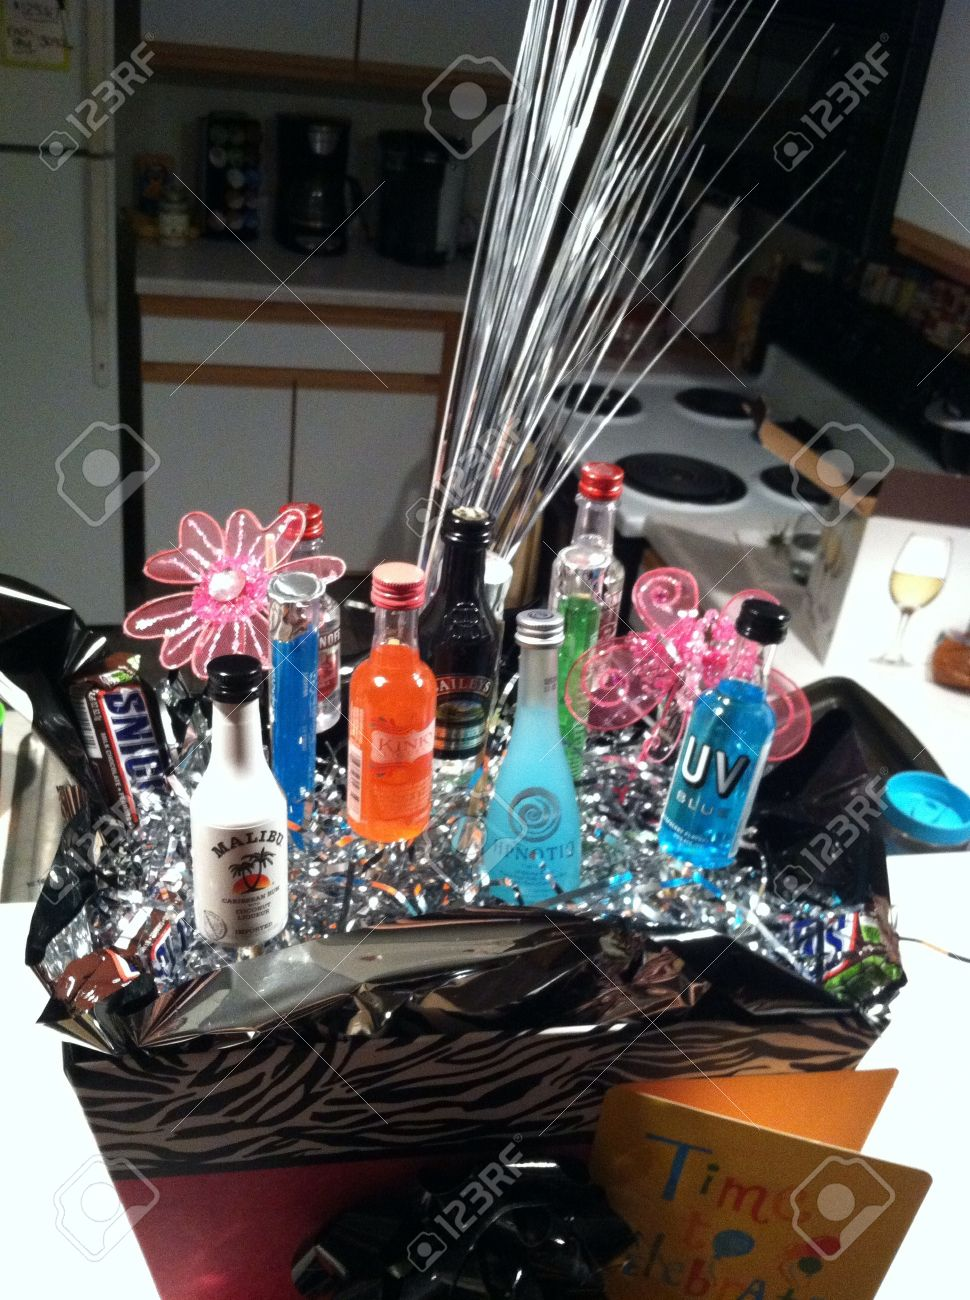 21st Birthday Gift Basket With Alcohol Bottles Stock Photo